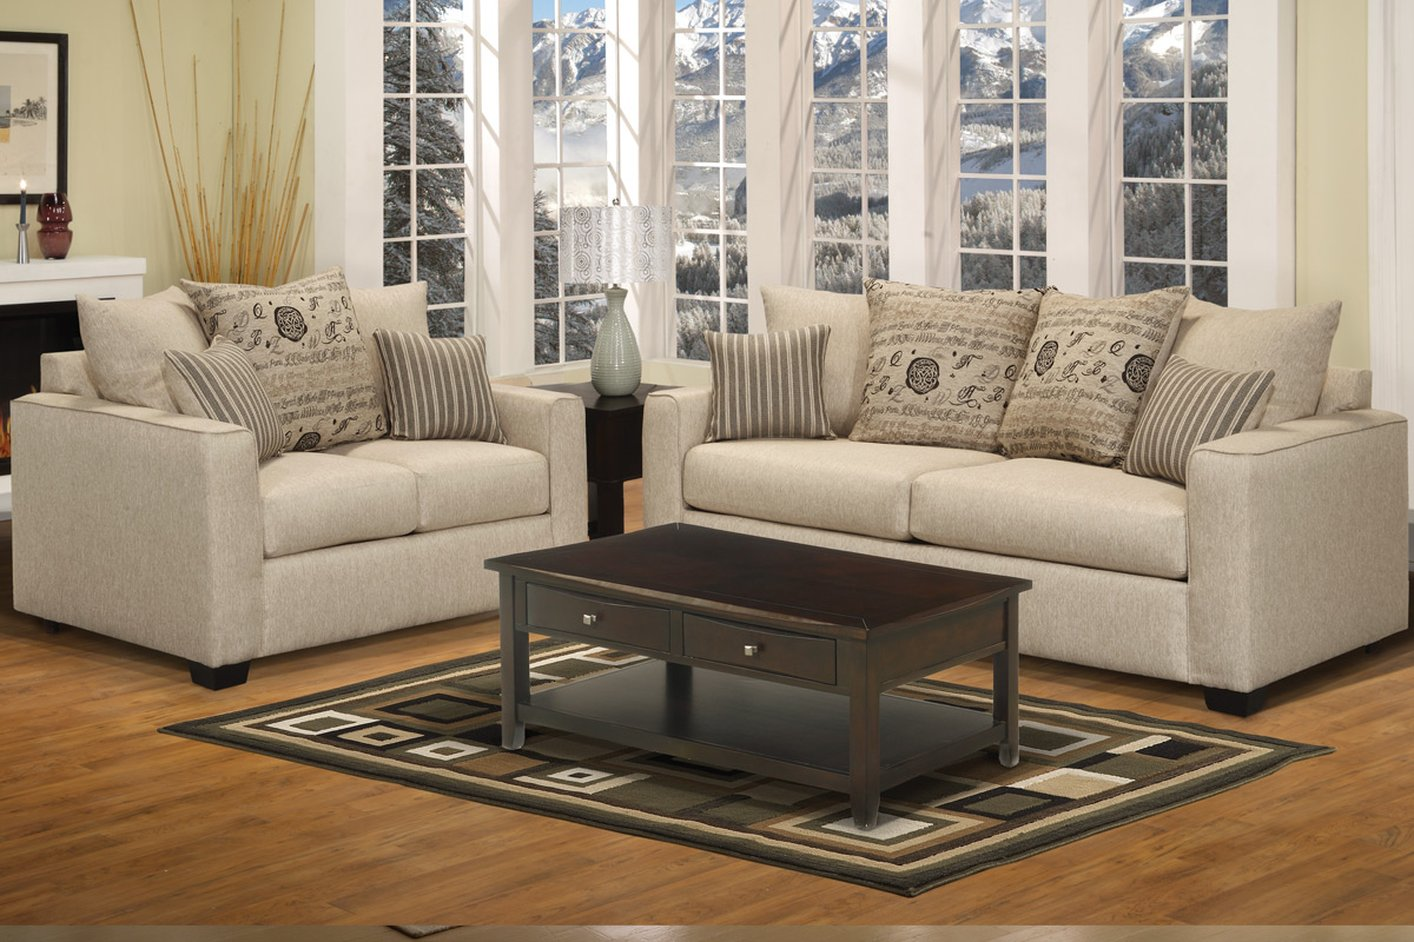 Sofa Loveseat Set StealASofa Furniture Outlet Los Angeles CA